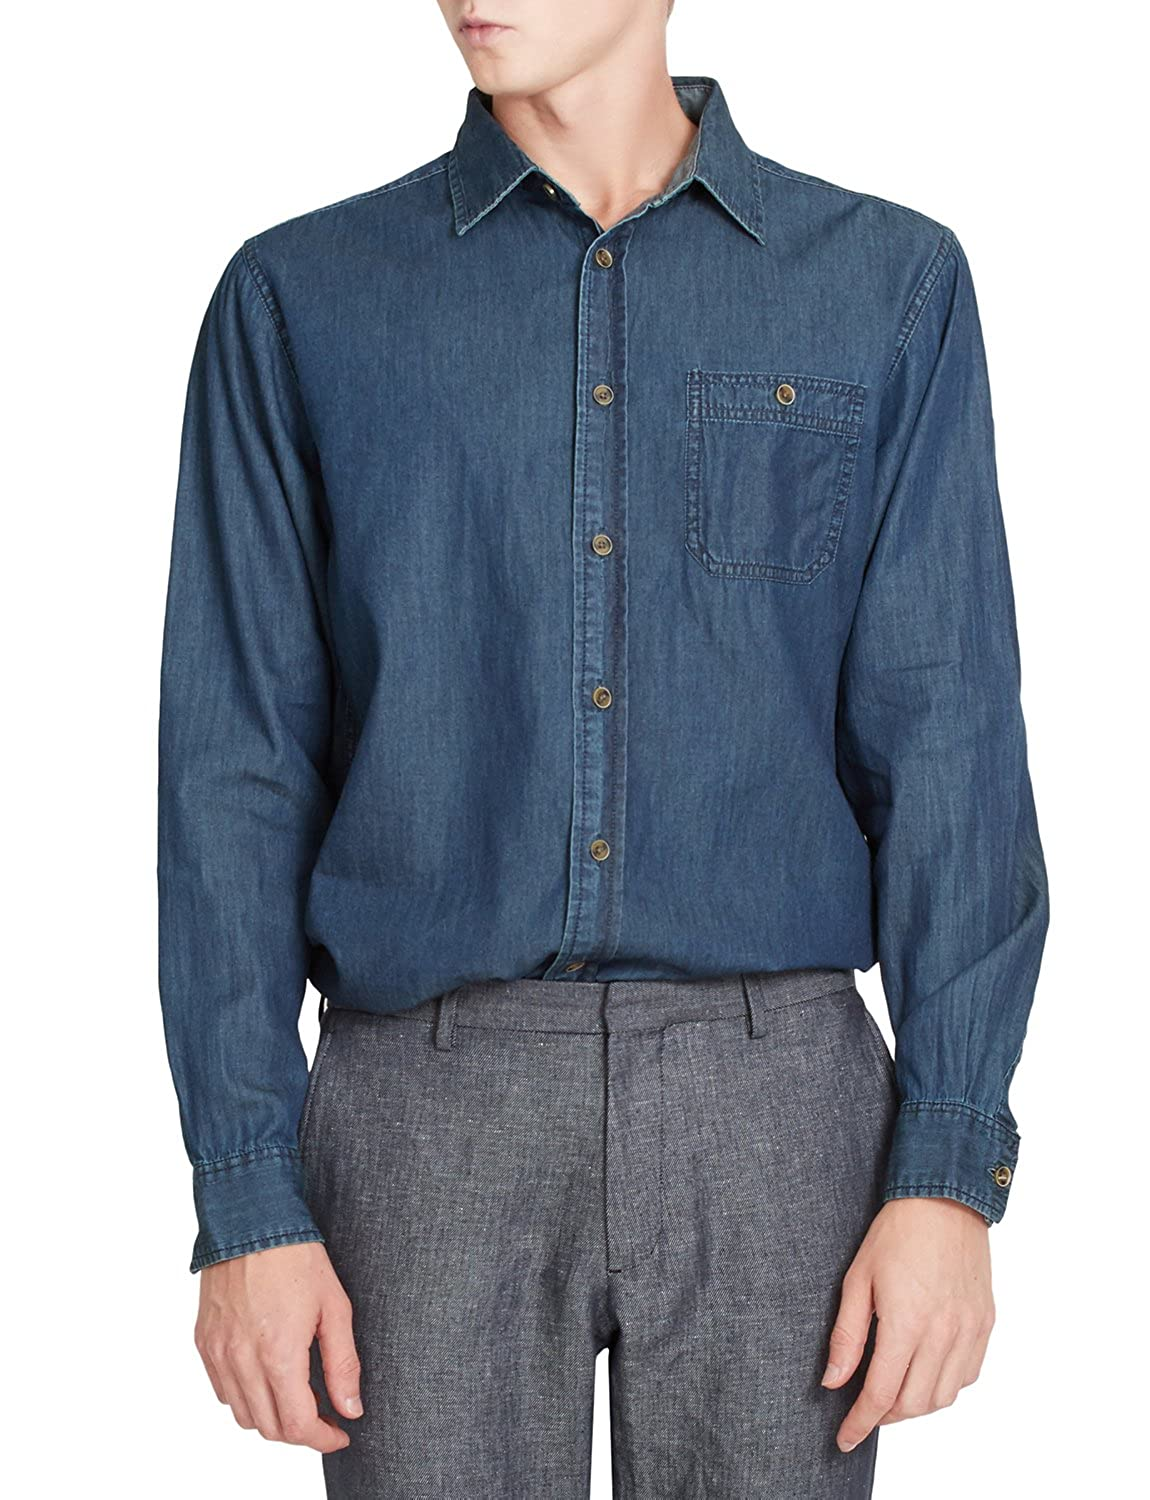 1910s Men's Working Class Clothing LE3NO PREMIUM Mens Vintage Long Sleeve Button Down Work Denim Shirt $43.54 AT vintagedancer.com